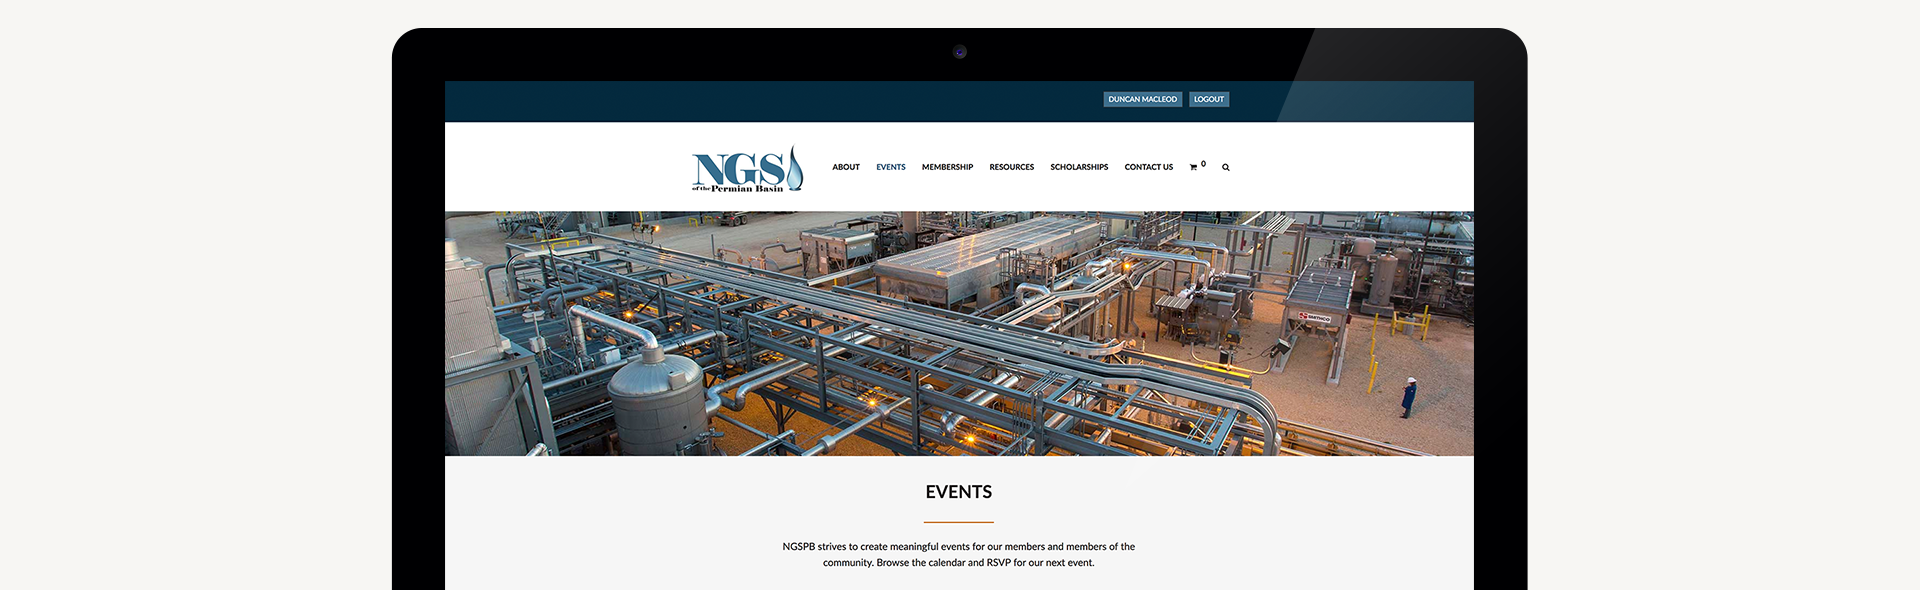 NGSPB Website | Macleod & Co. | Full Service Digital Marketing Agency Minneapolis